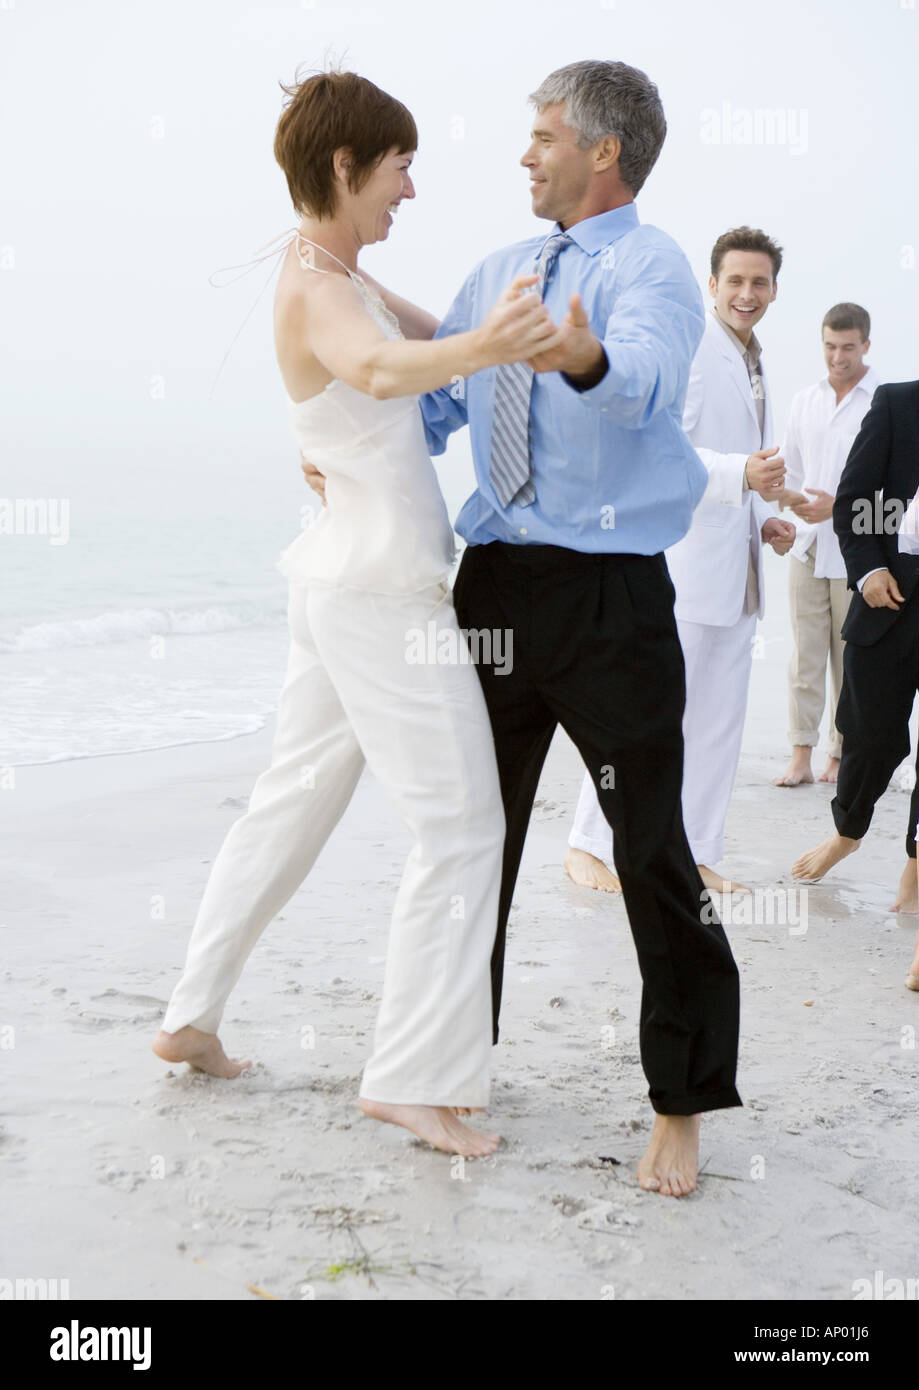 People in formalwear dancing on beach - Stock Image